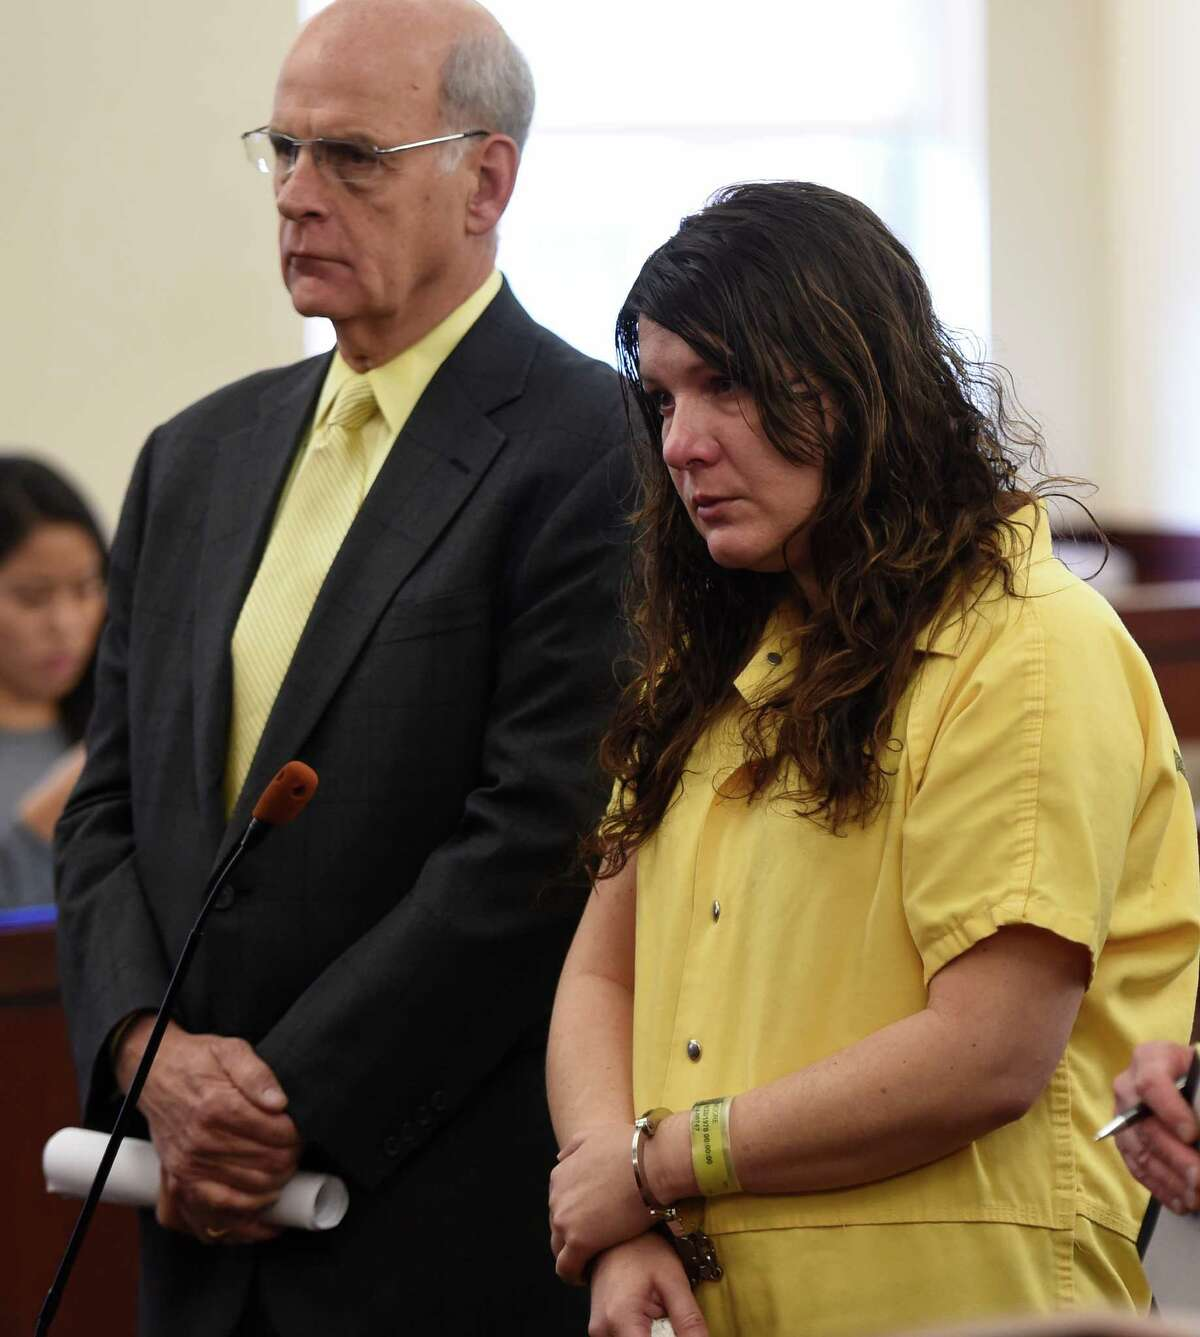 Defendant Sara Moore received a sentence of 25 years to life from Judge Stephen Herrick Tuesday morning Oct. 14, 2014 in Albany County Court in Albany, N.Y. for the murder of a 79 year old man that she was caring for. With Moore is her attorney Stephen Coffey. (Skip Dickstein/Times Union)